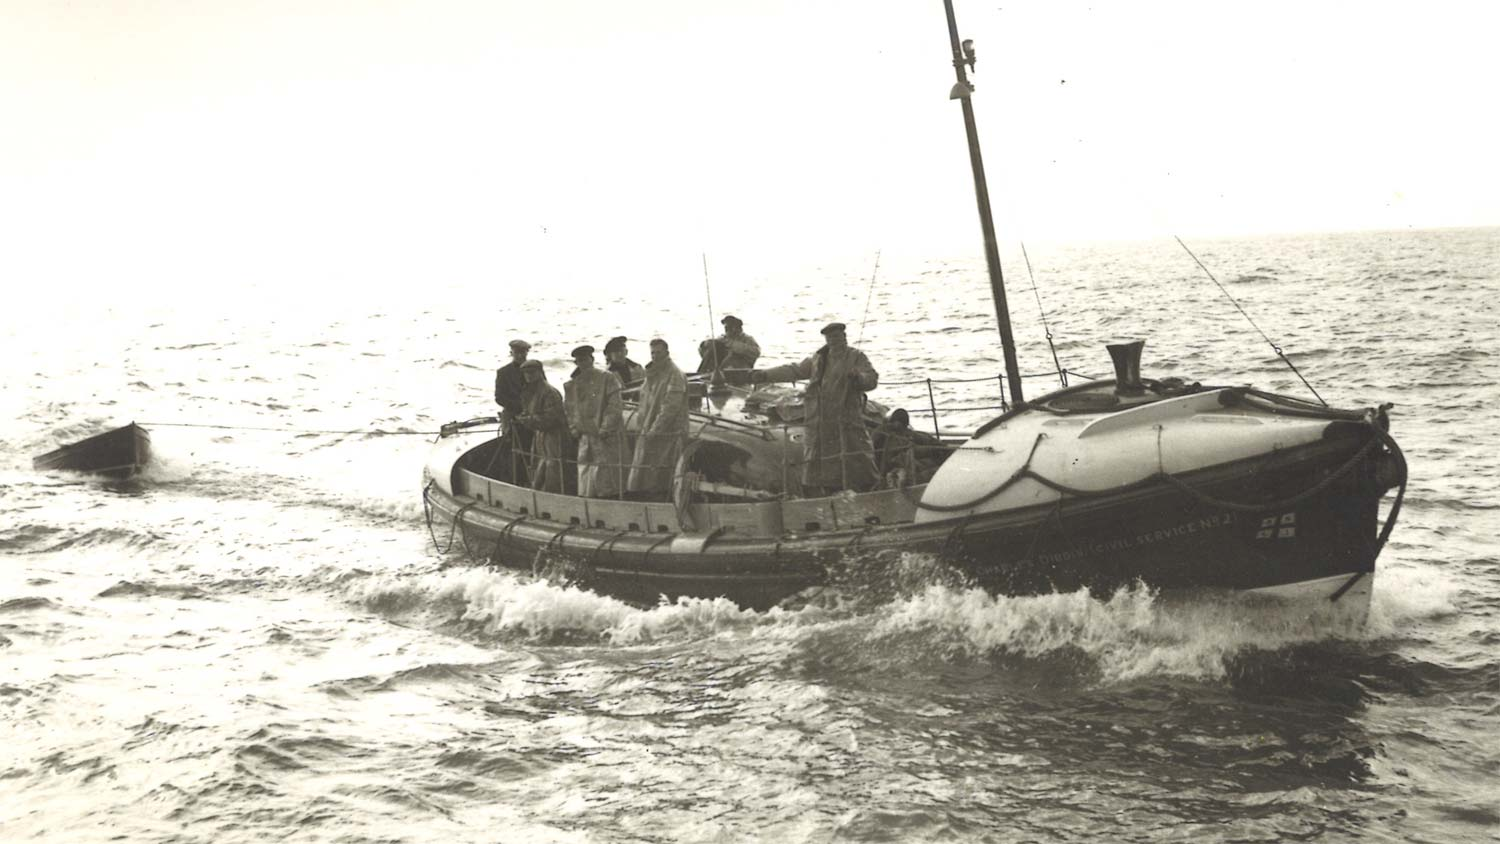 Walmer lifeboat Charles Dibdin at sea, 1940